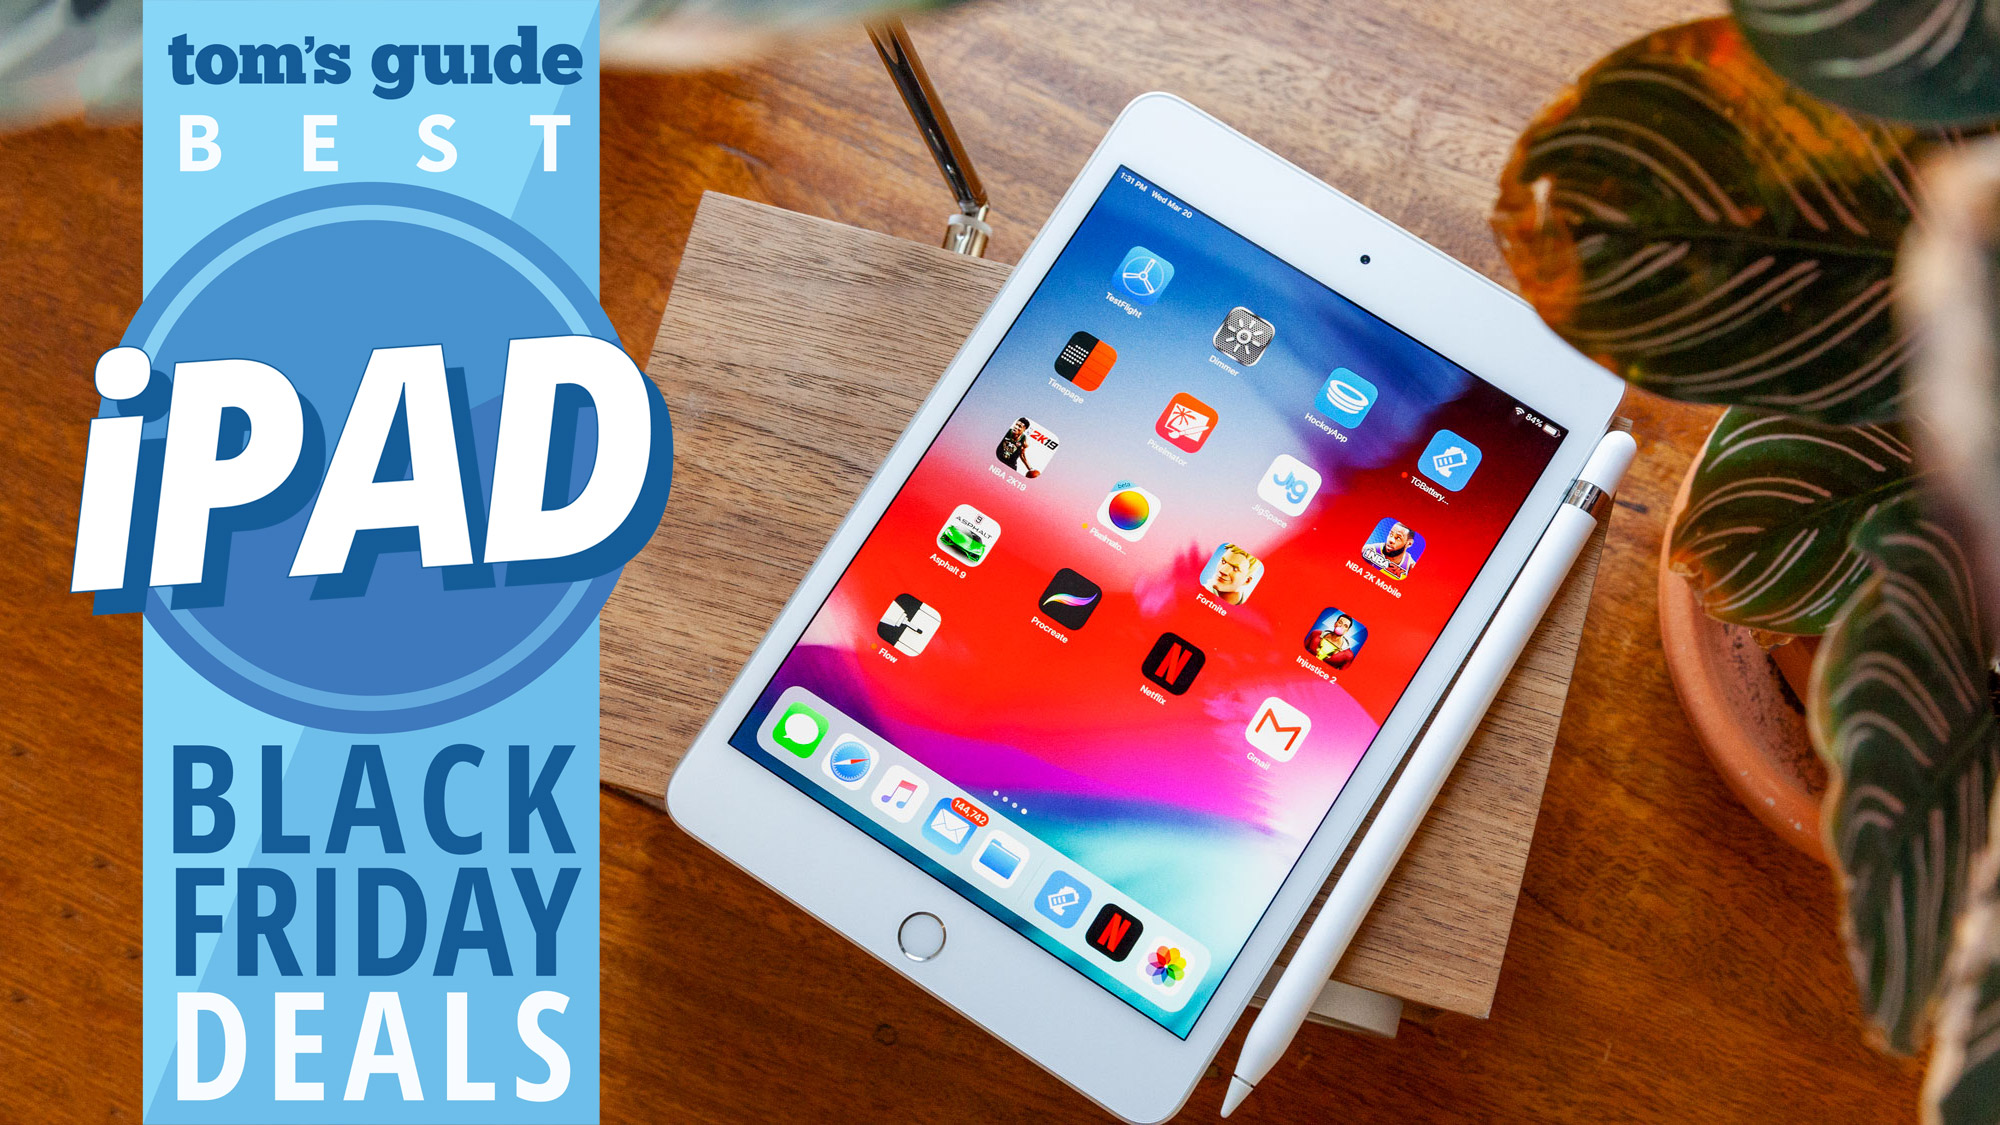 Best Black Friday Phone Deals 2020.Best Ipad Black Friday Deals In 2019 Tom S Guide